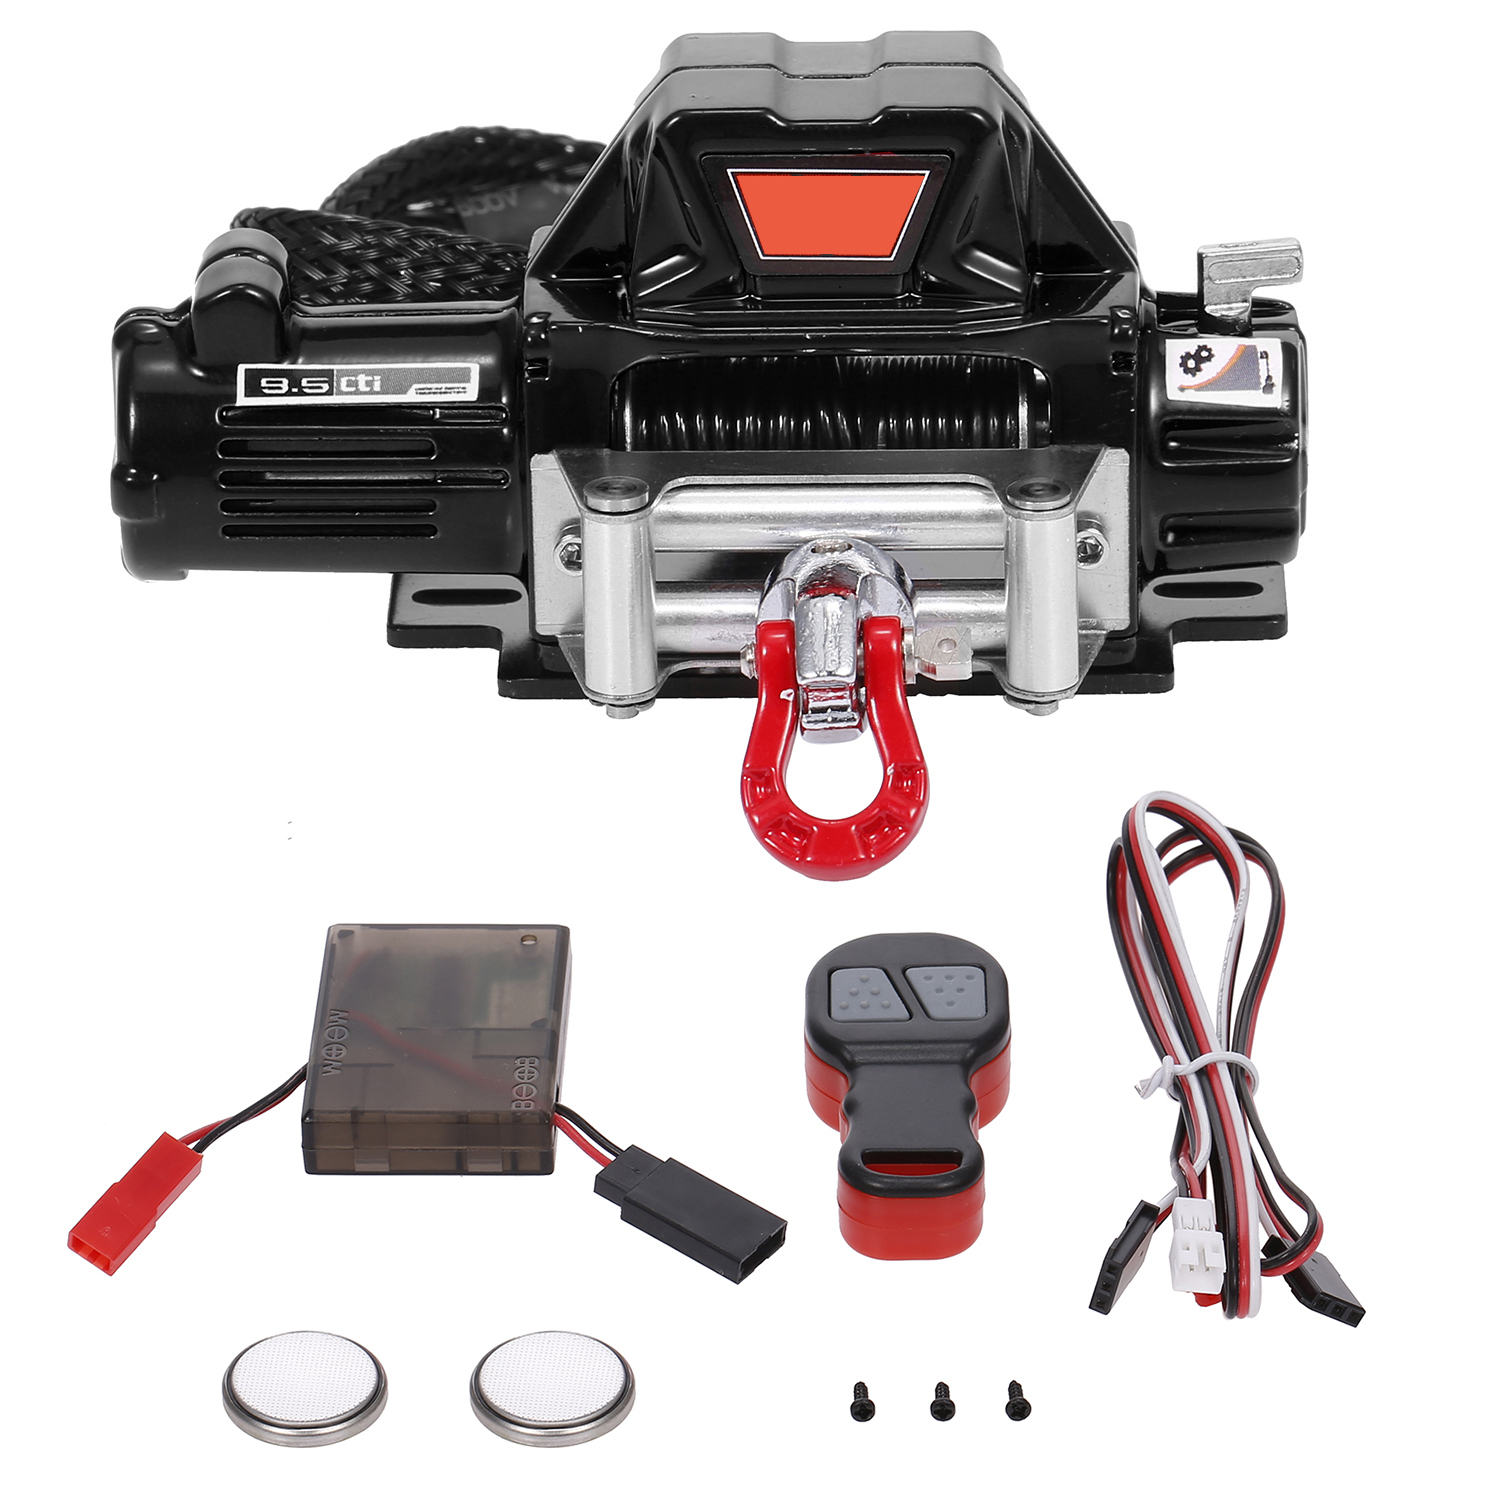 1//10 Rock Crawler Automatic Winch Controller Set+LED Light Bar for RC4WD D90